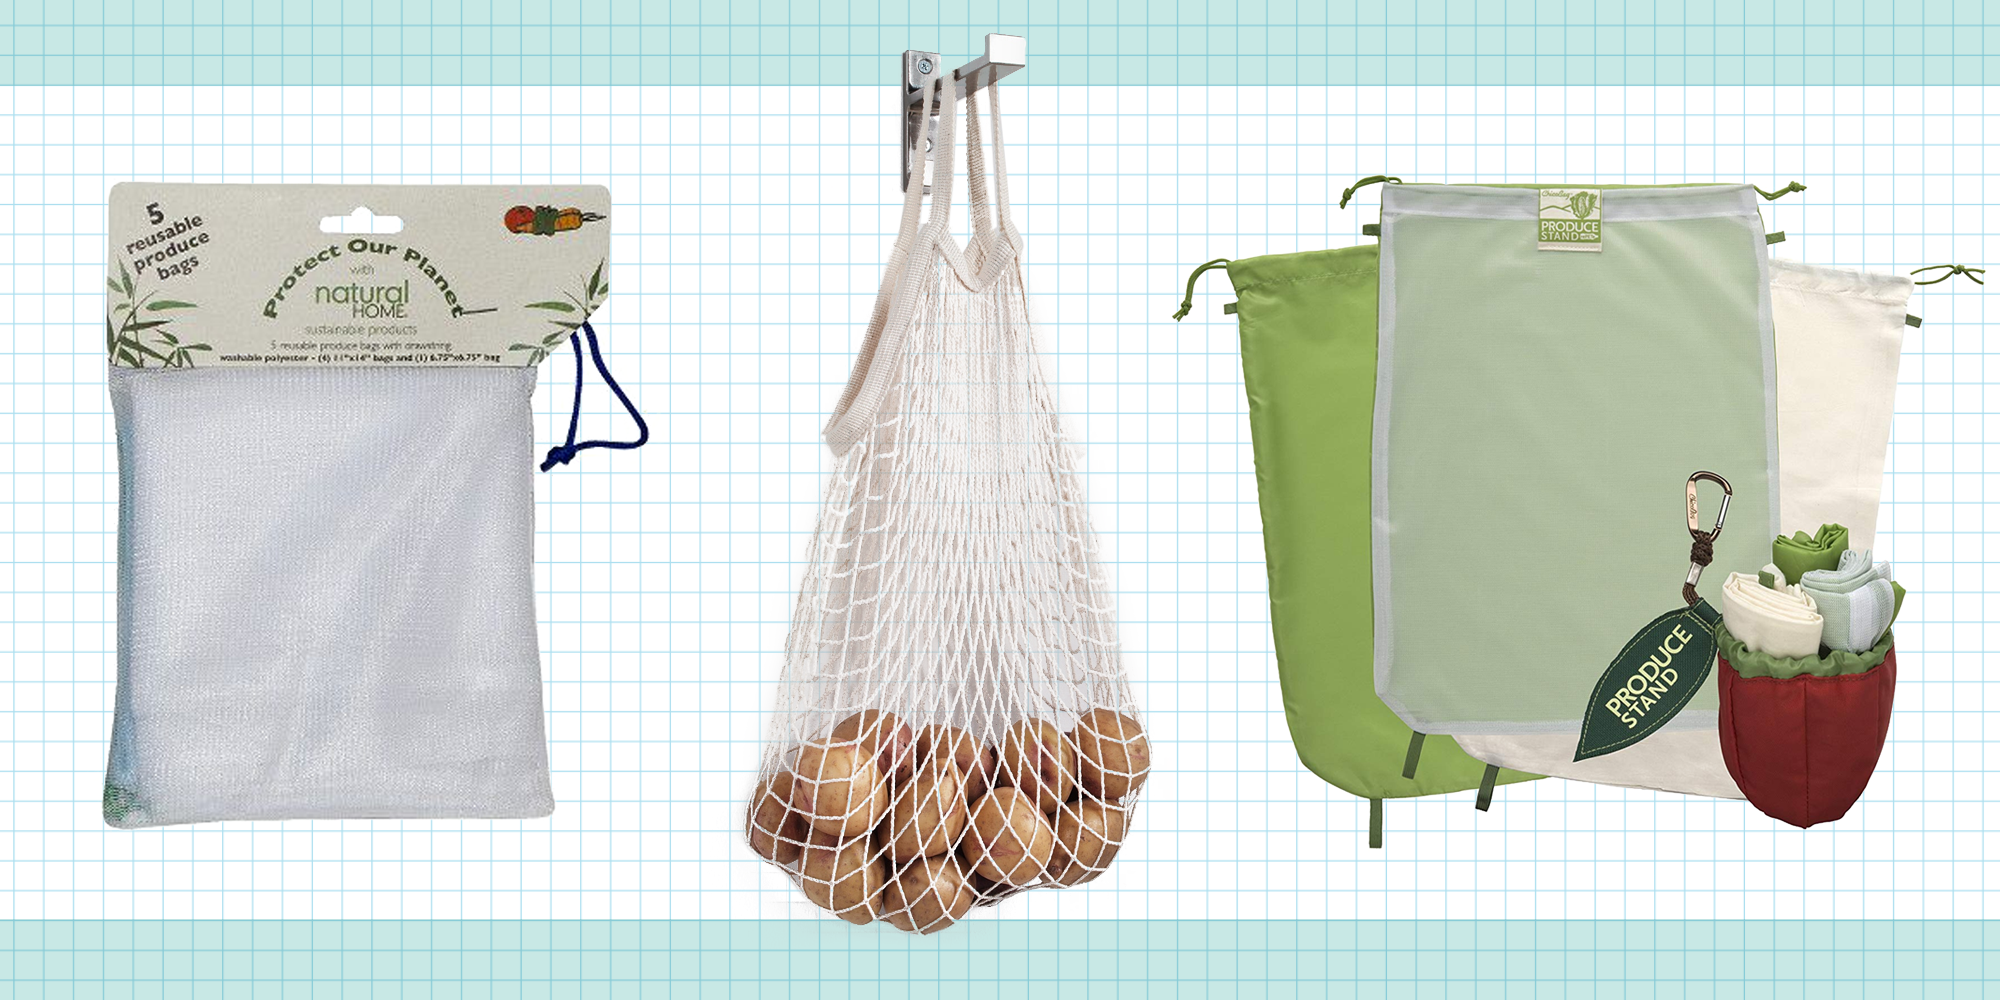 a94e5332c32f 7 Best Reusable Produce Bags to Transport Your Fruits and Veggies ...